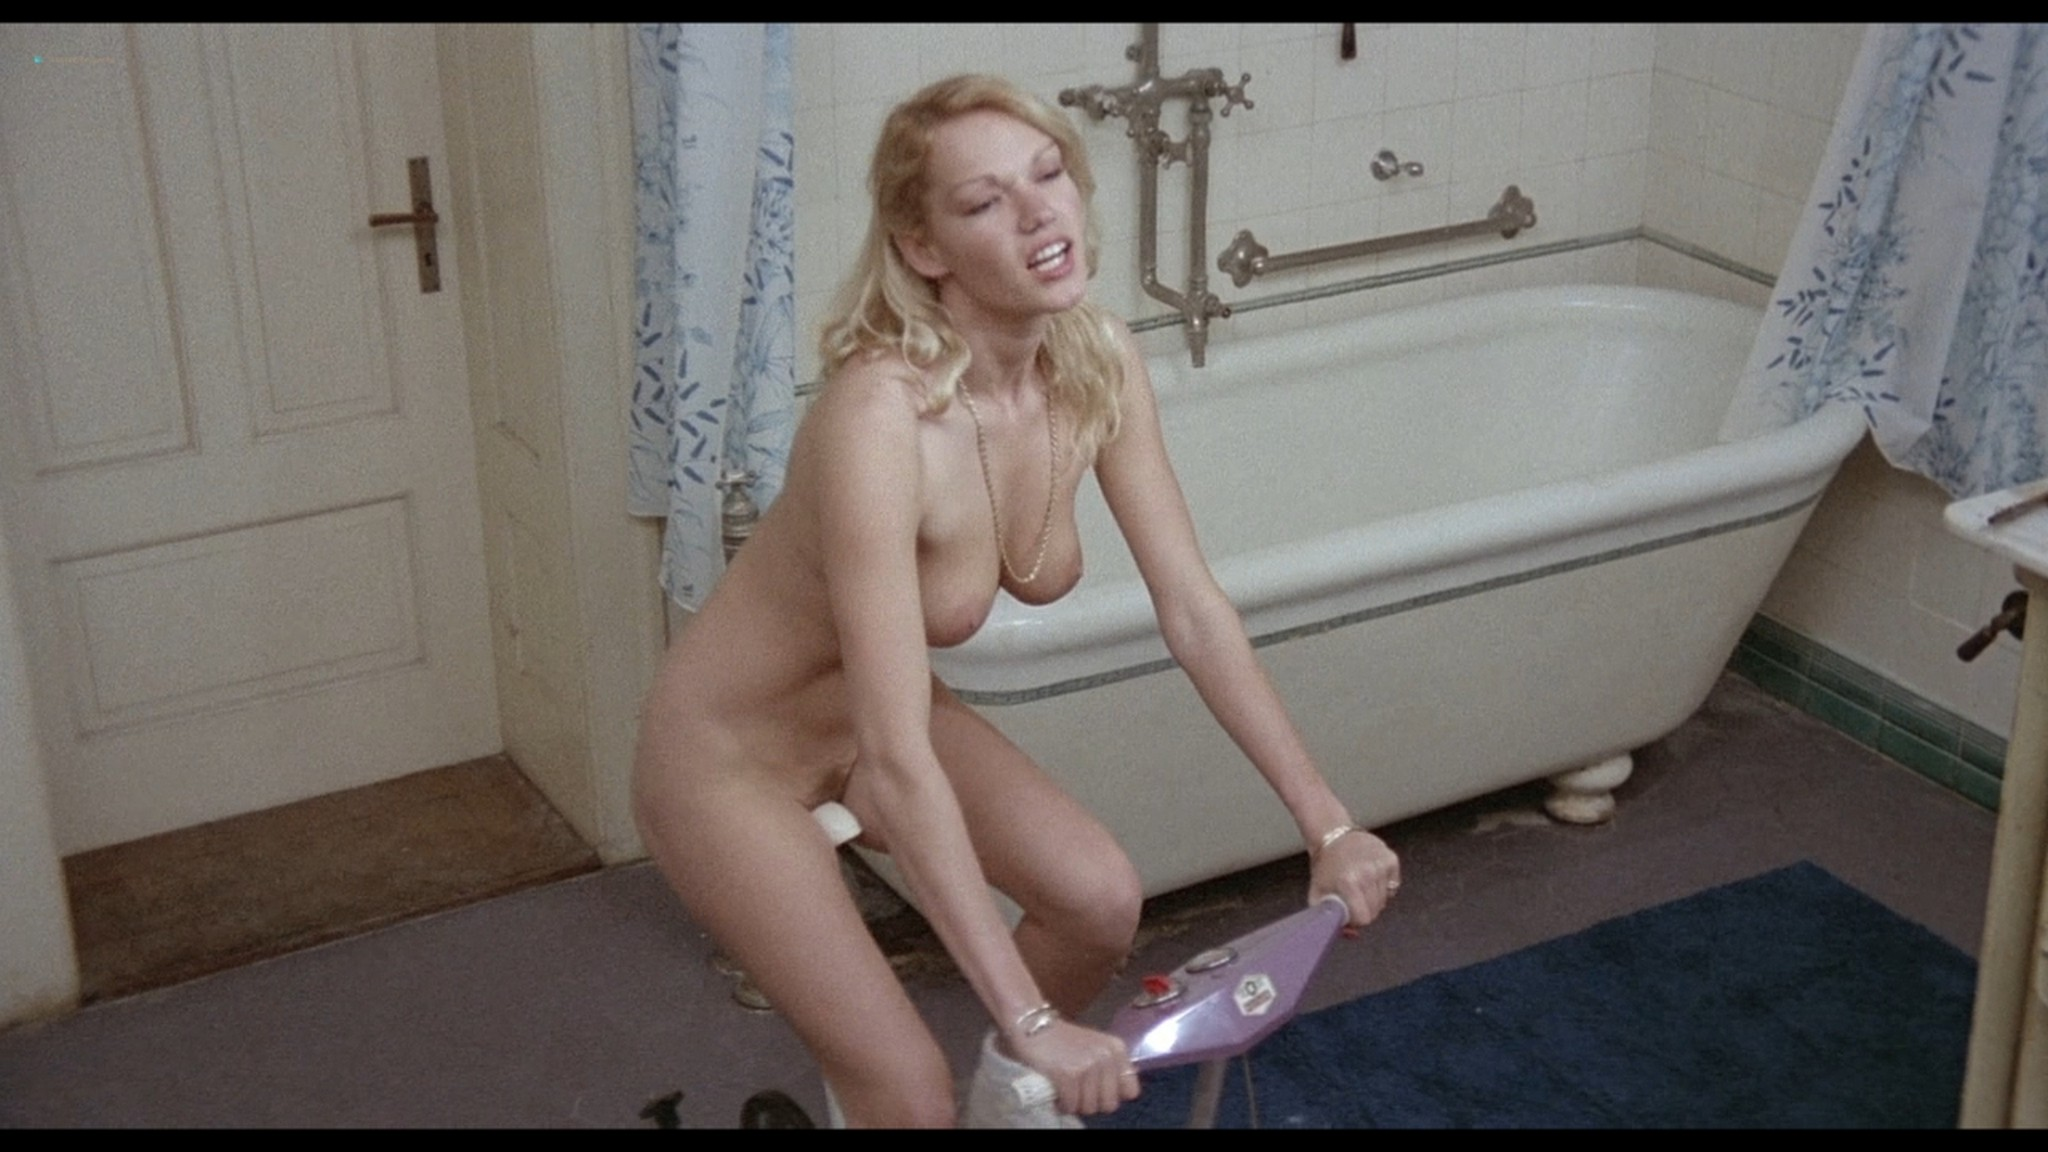 Brigitte Lahaie nude sex Elsa Maroussia and other lots of sex - Swedish Gas Pump Girls (1980) HD 720p BluRay (12)